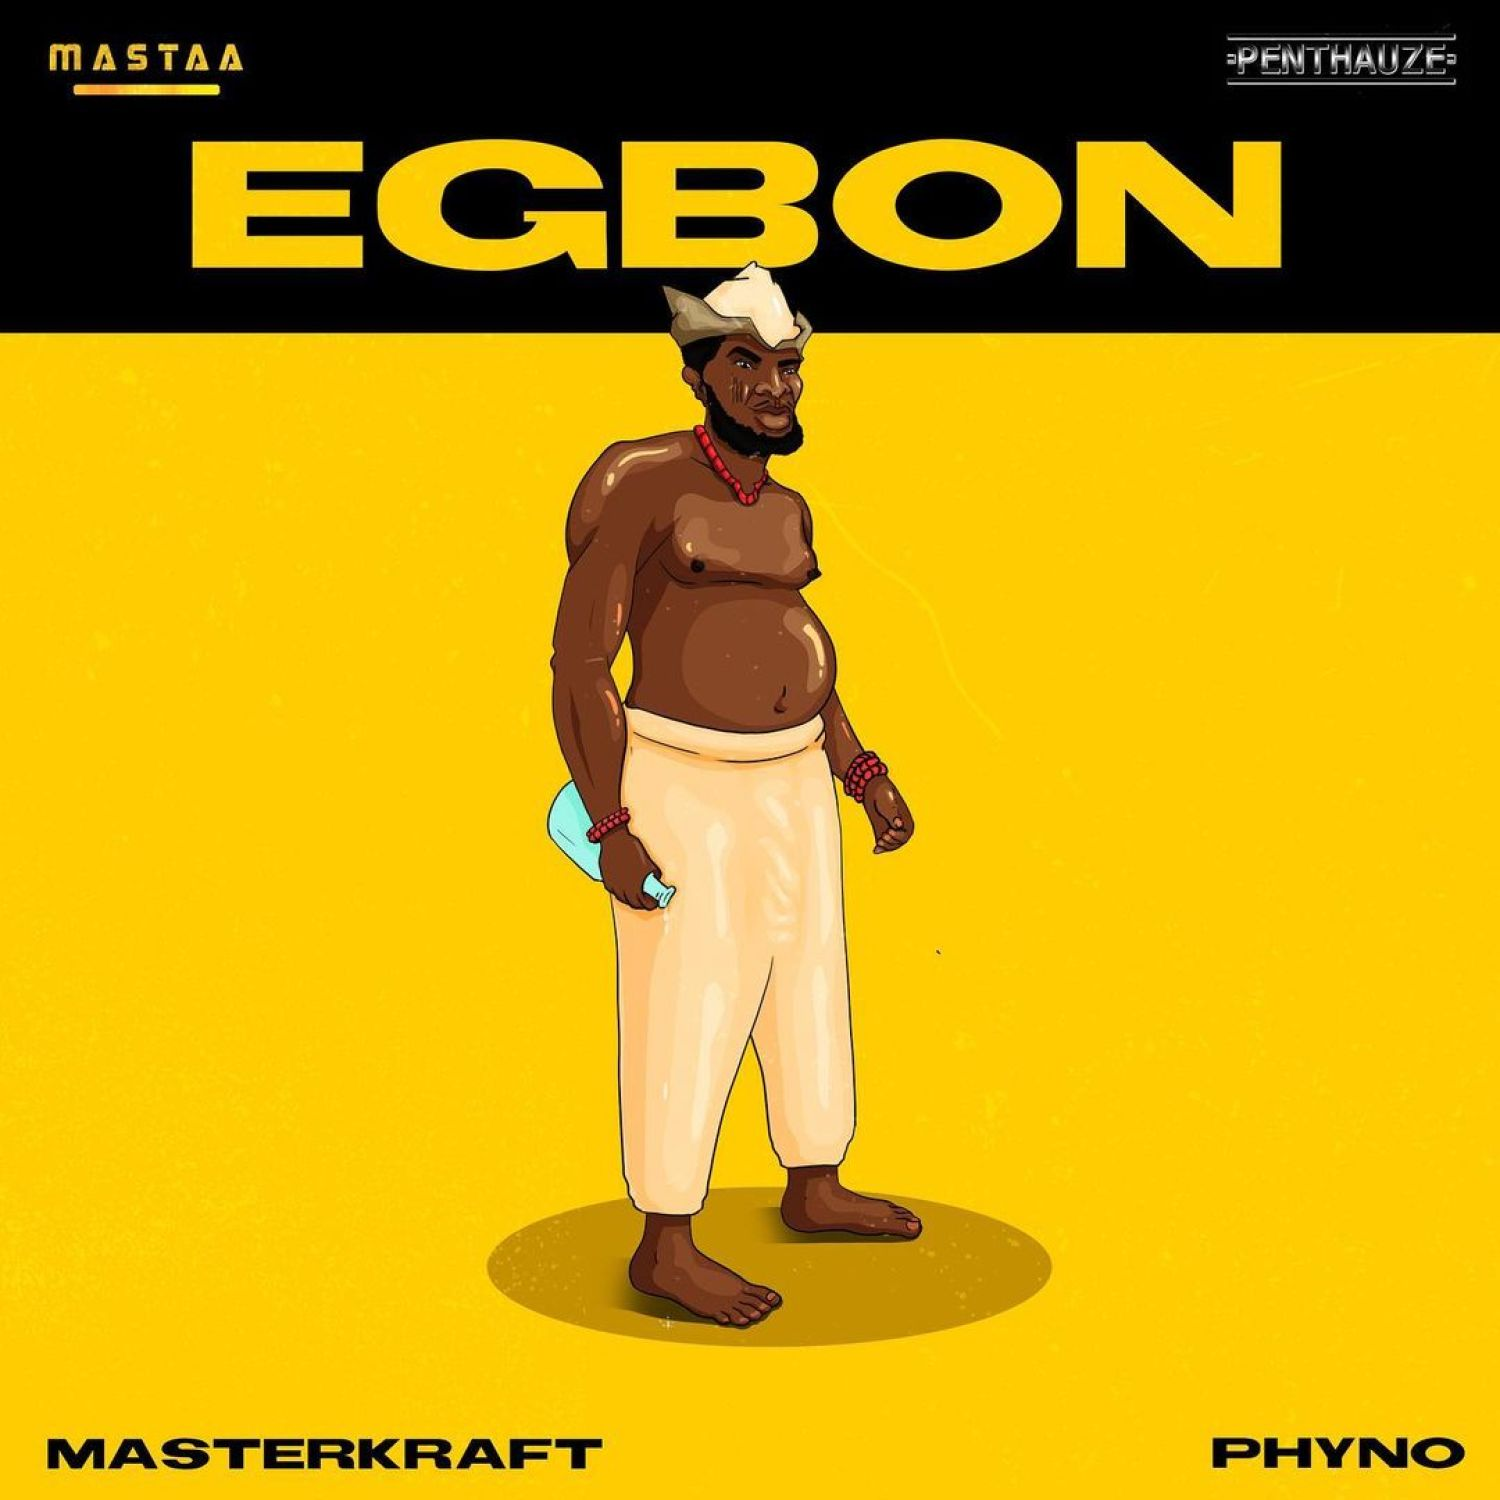 DOWNLOAD MP3: Masterkraft Ft. Phyno – Egbon AUDIO 320kbps